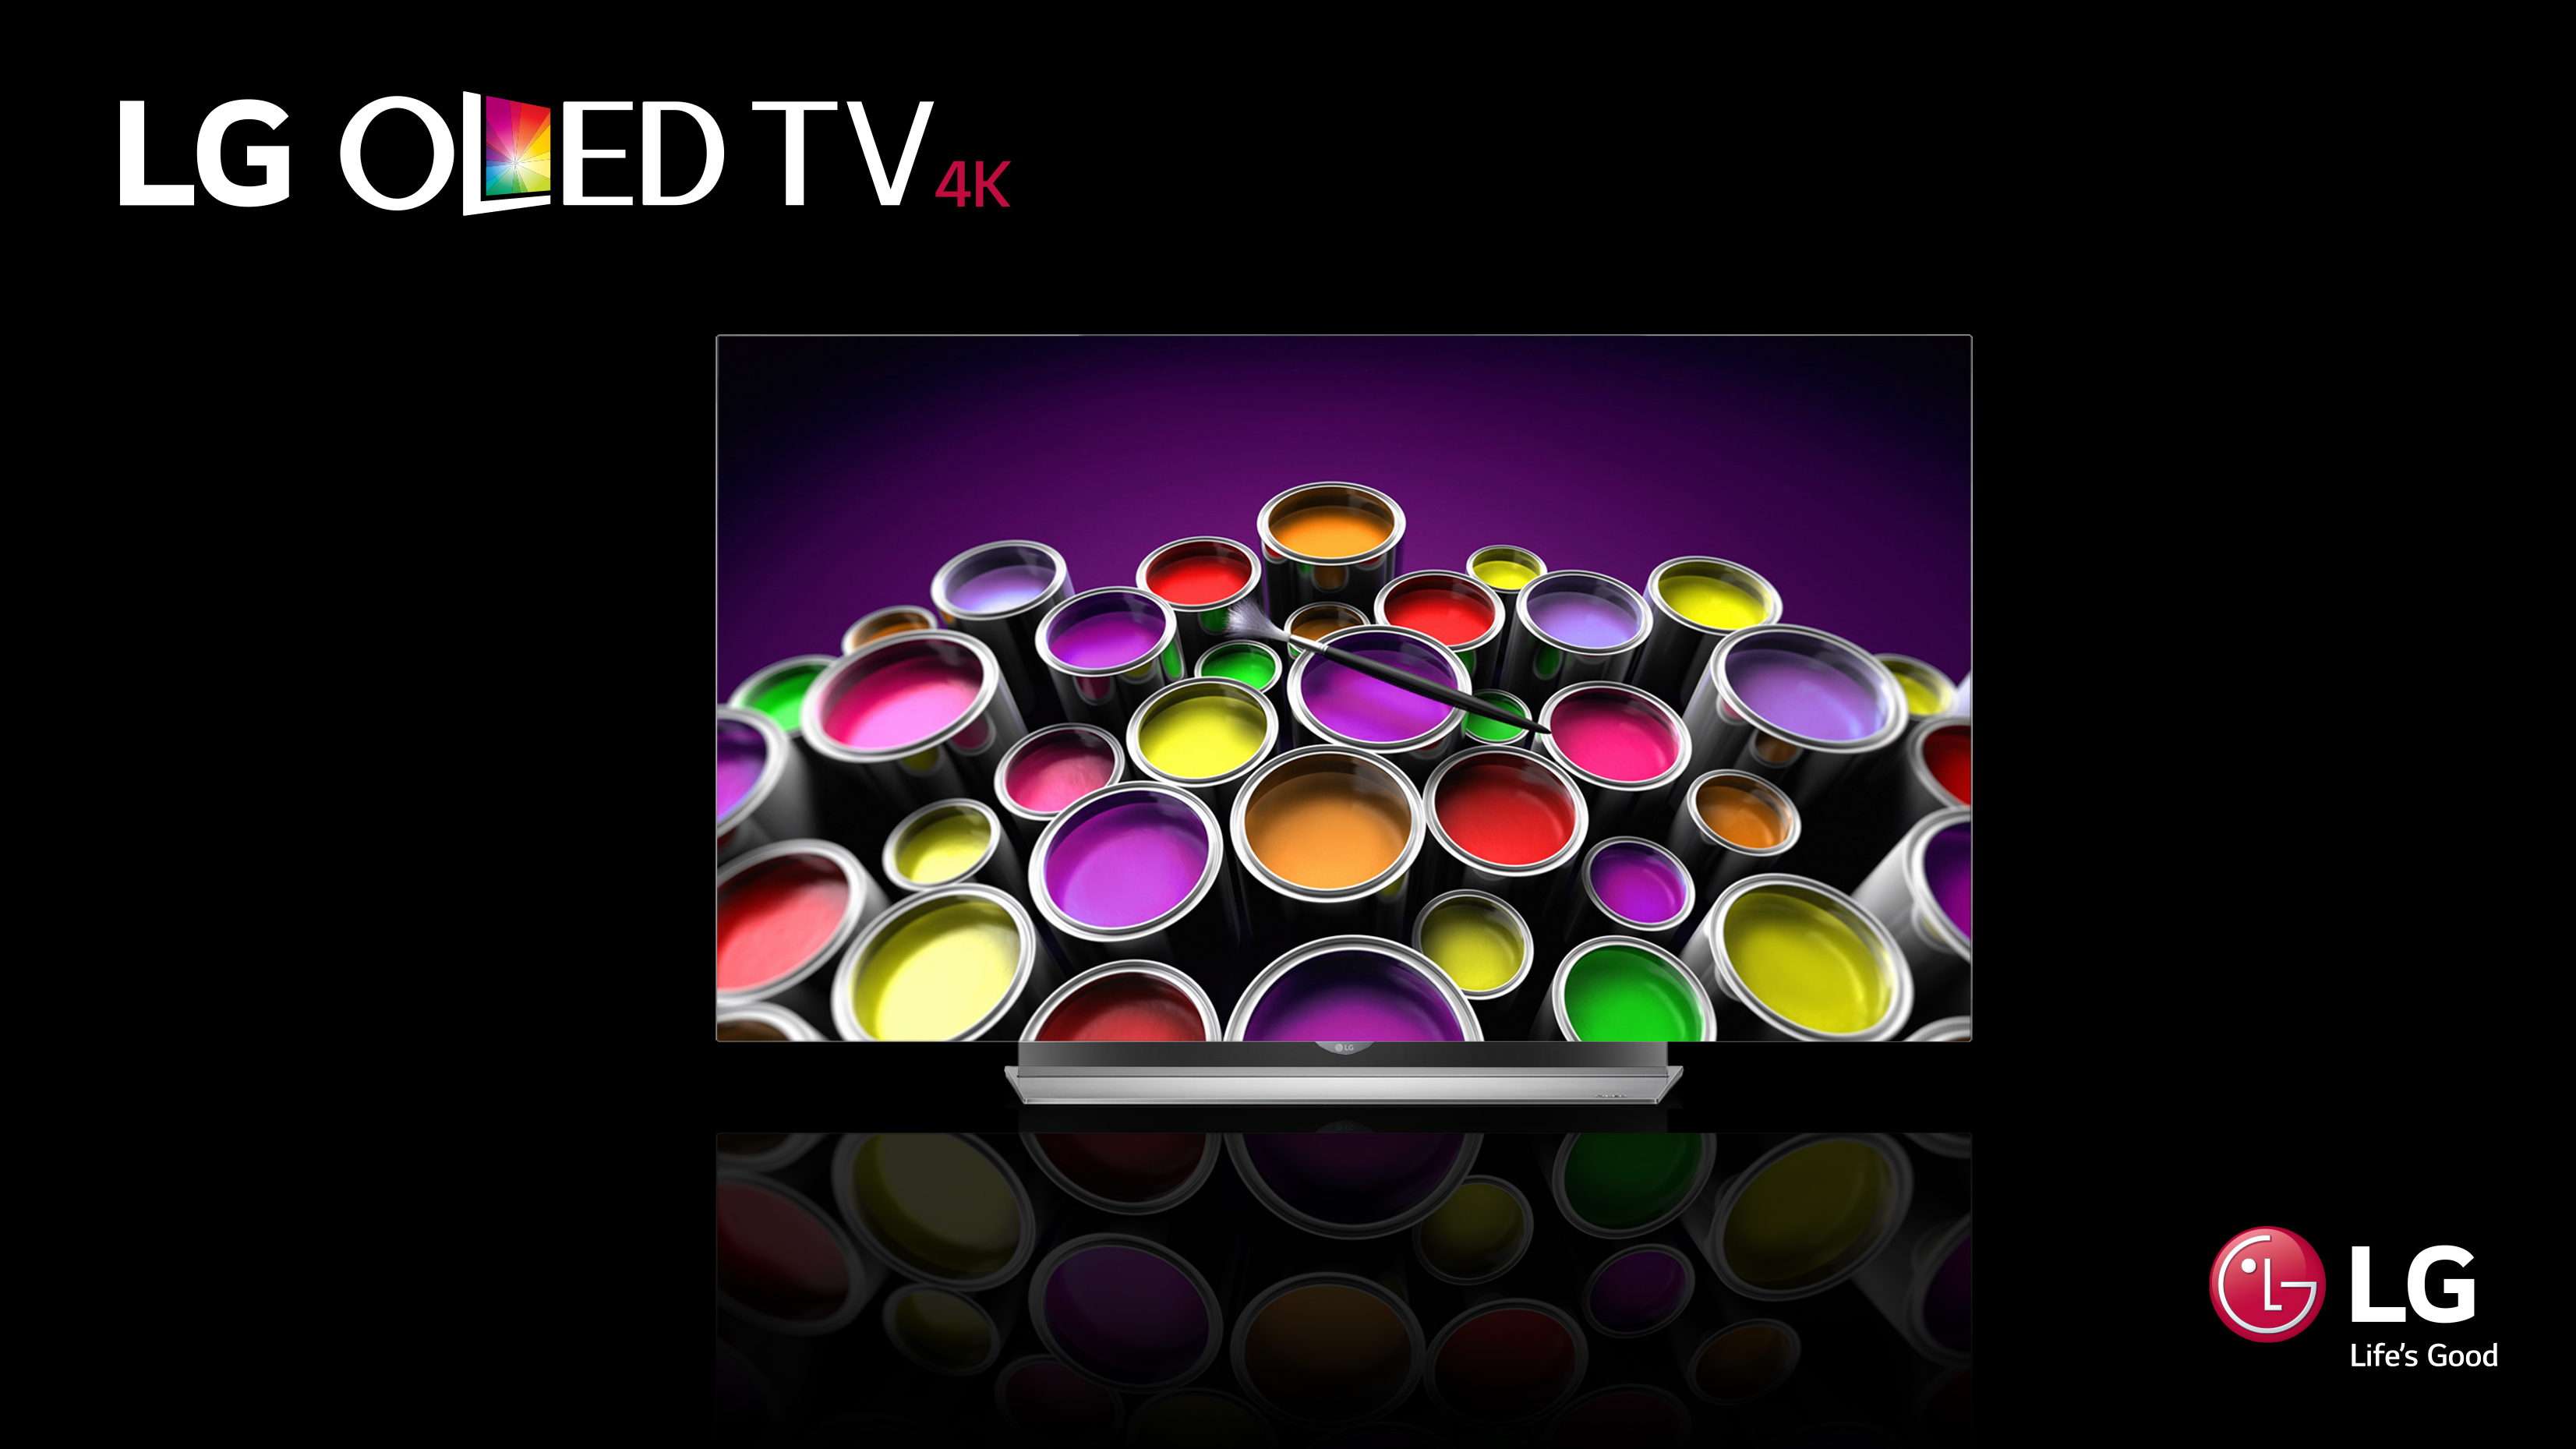 release_LG OLED TV- best device for HDR content